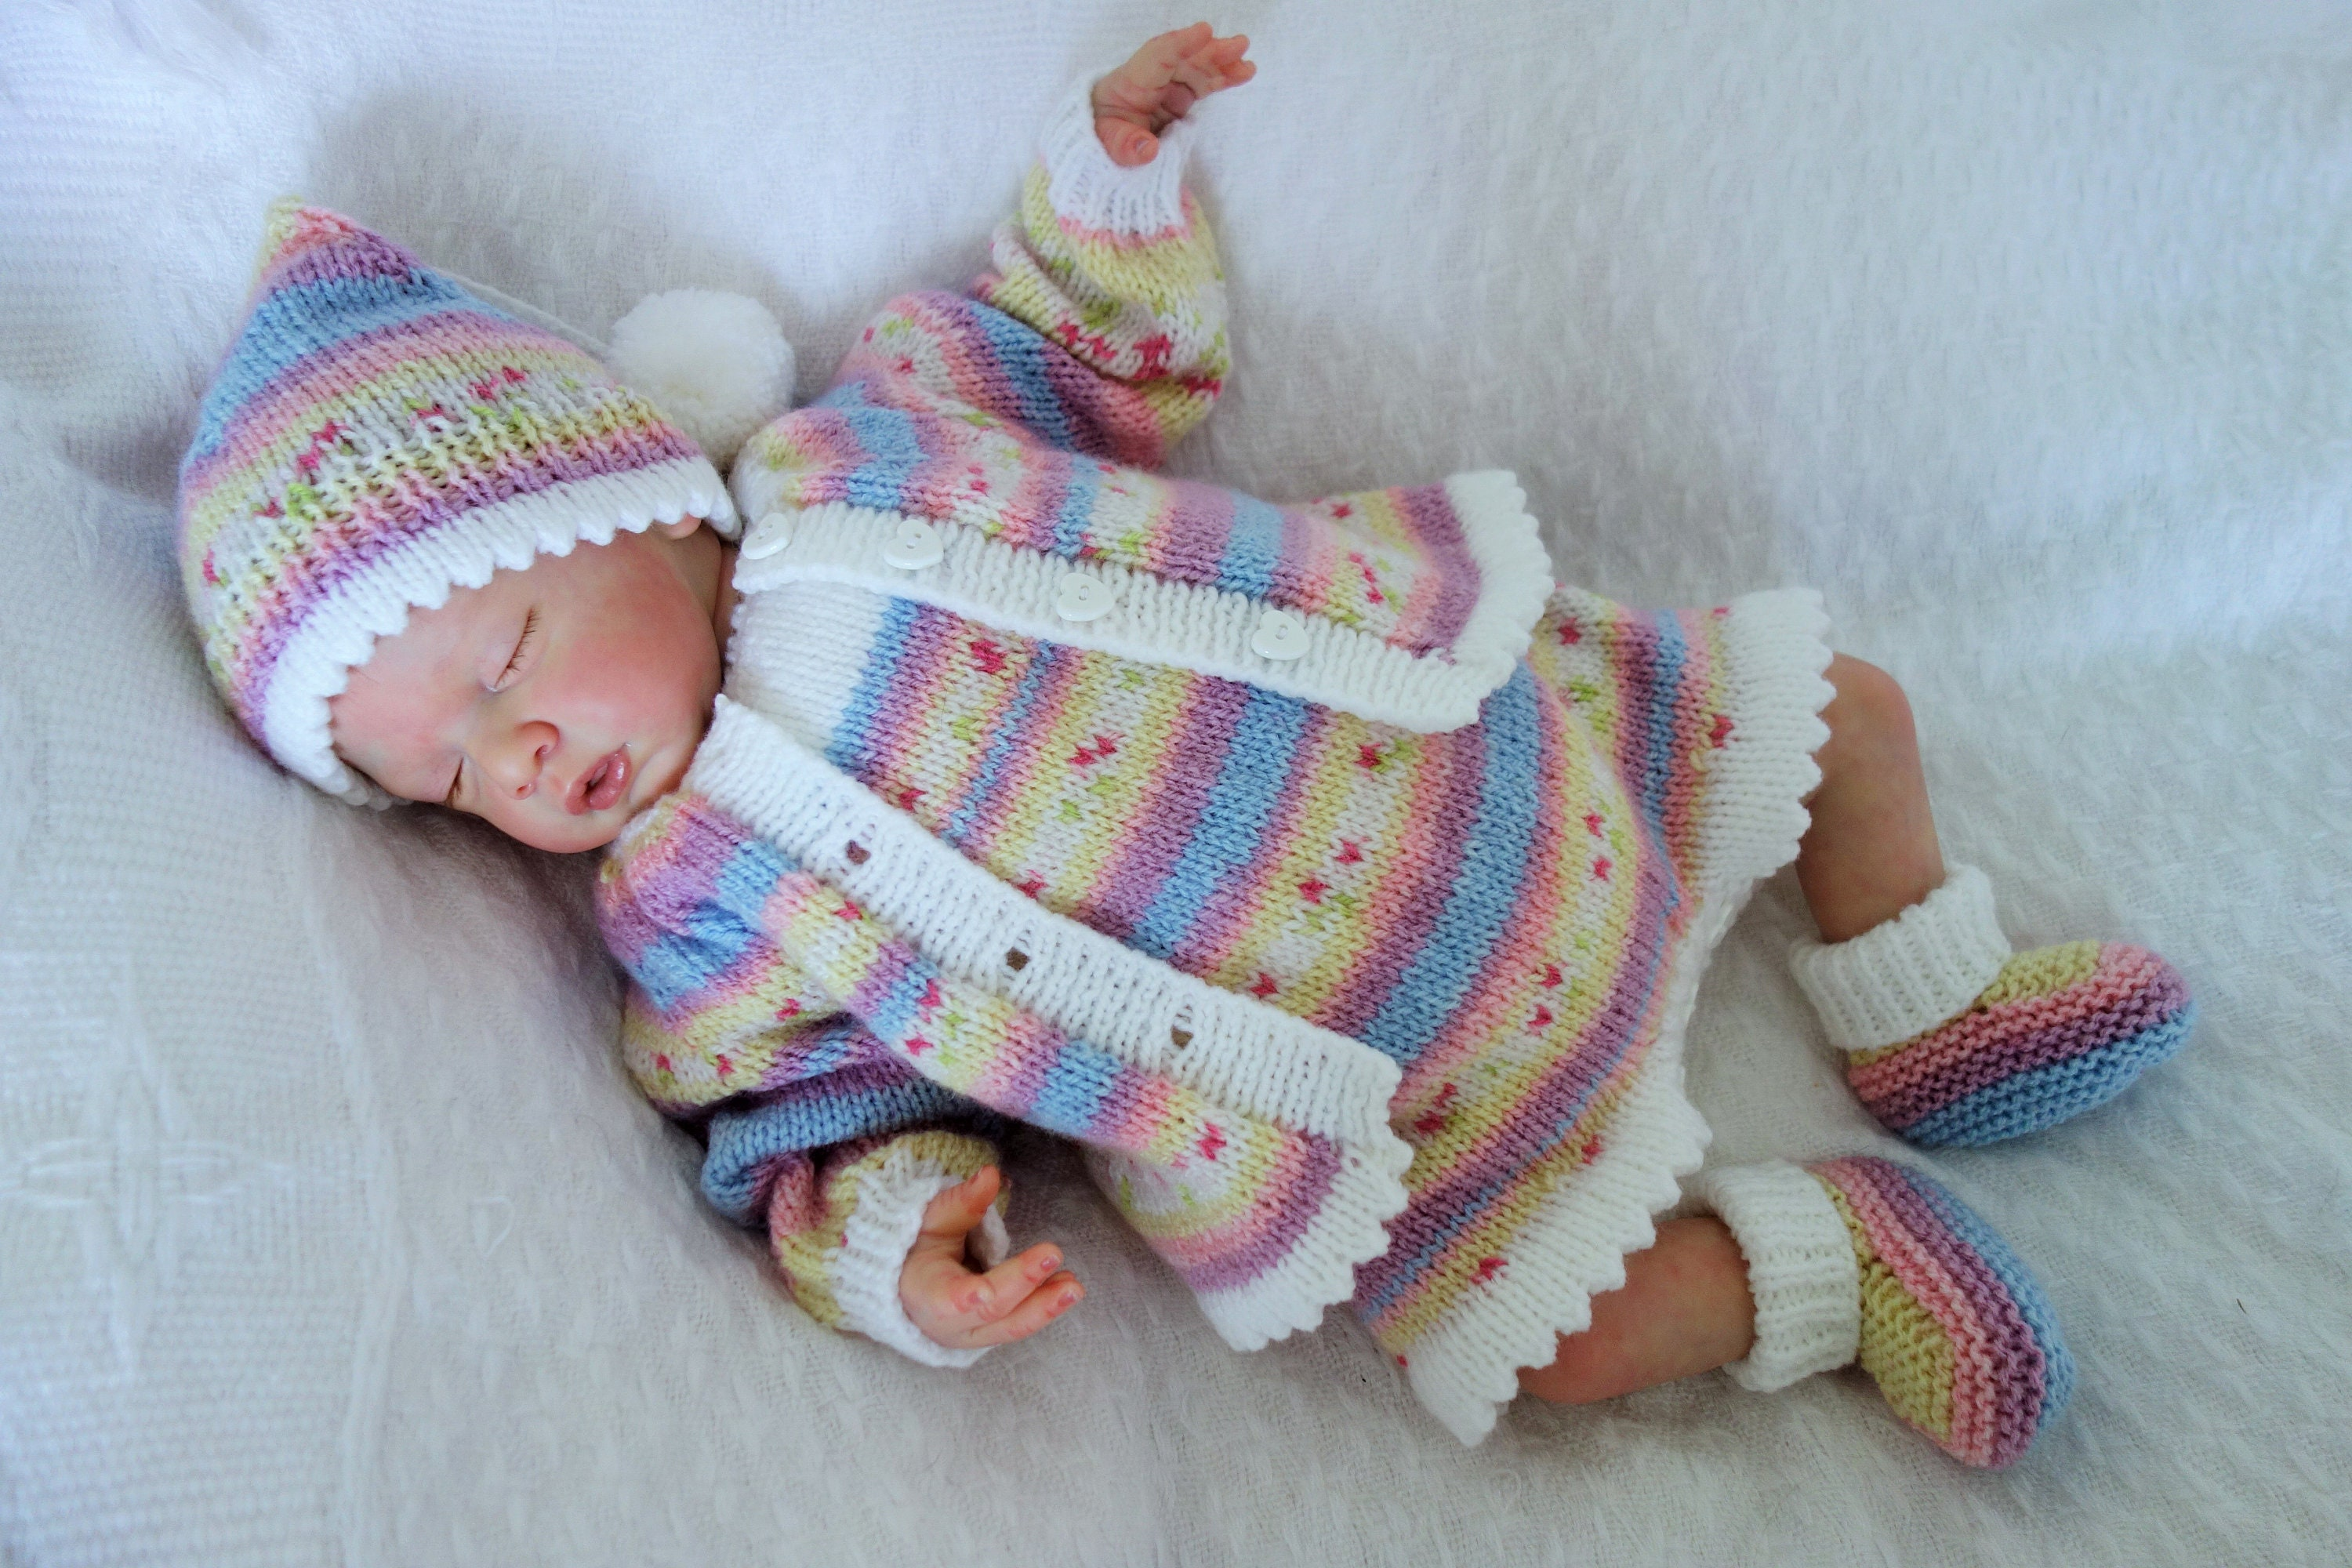 3-6 months NEW Hand knitted  baby girl bonnet with pastel shade lace trim